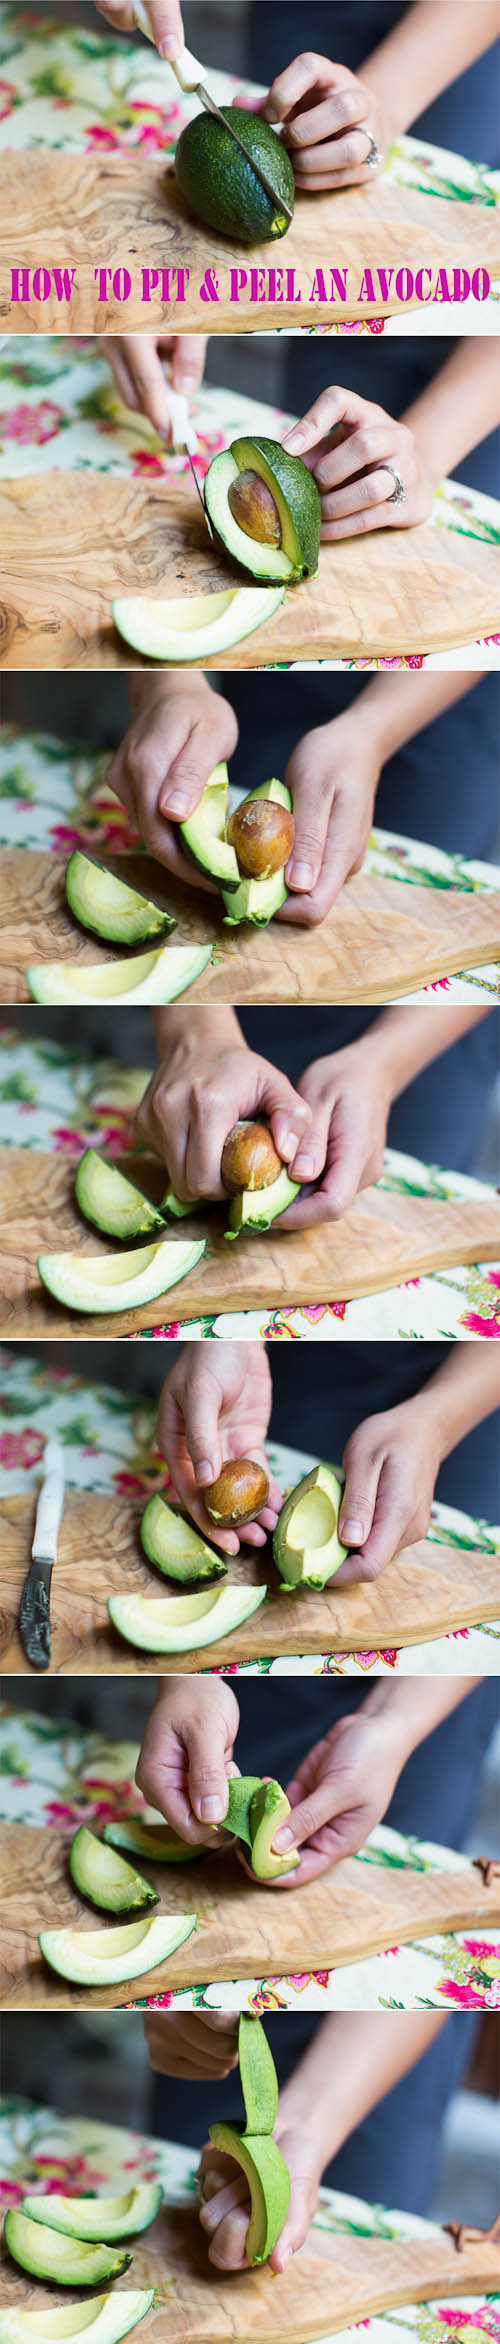 How to Pit and Peel an Avocado